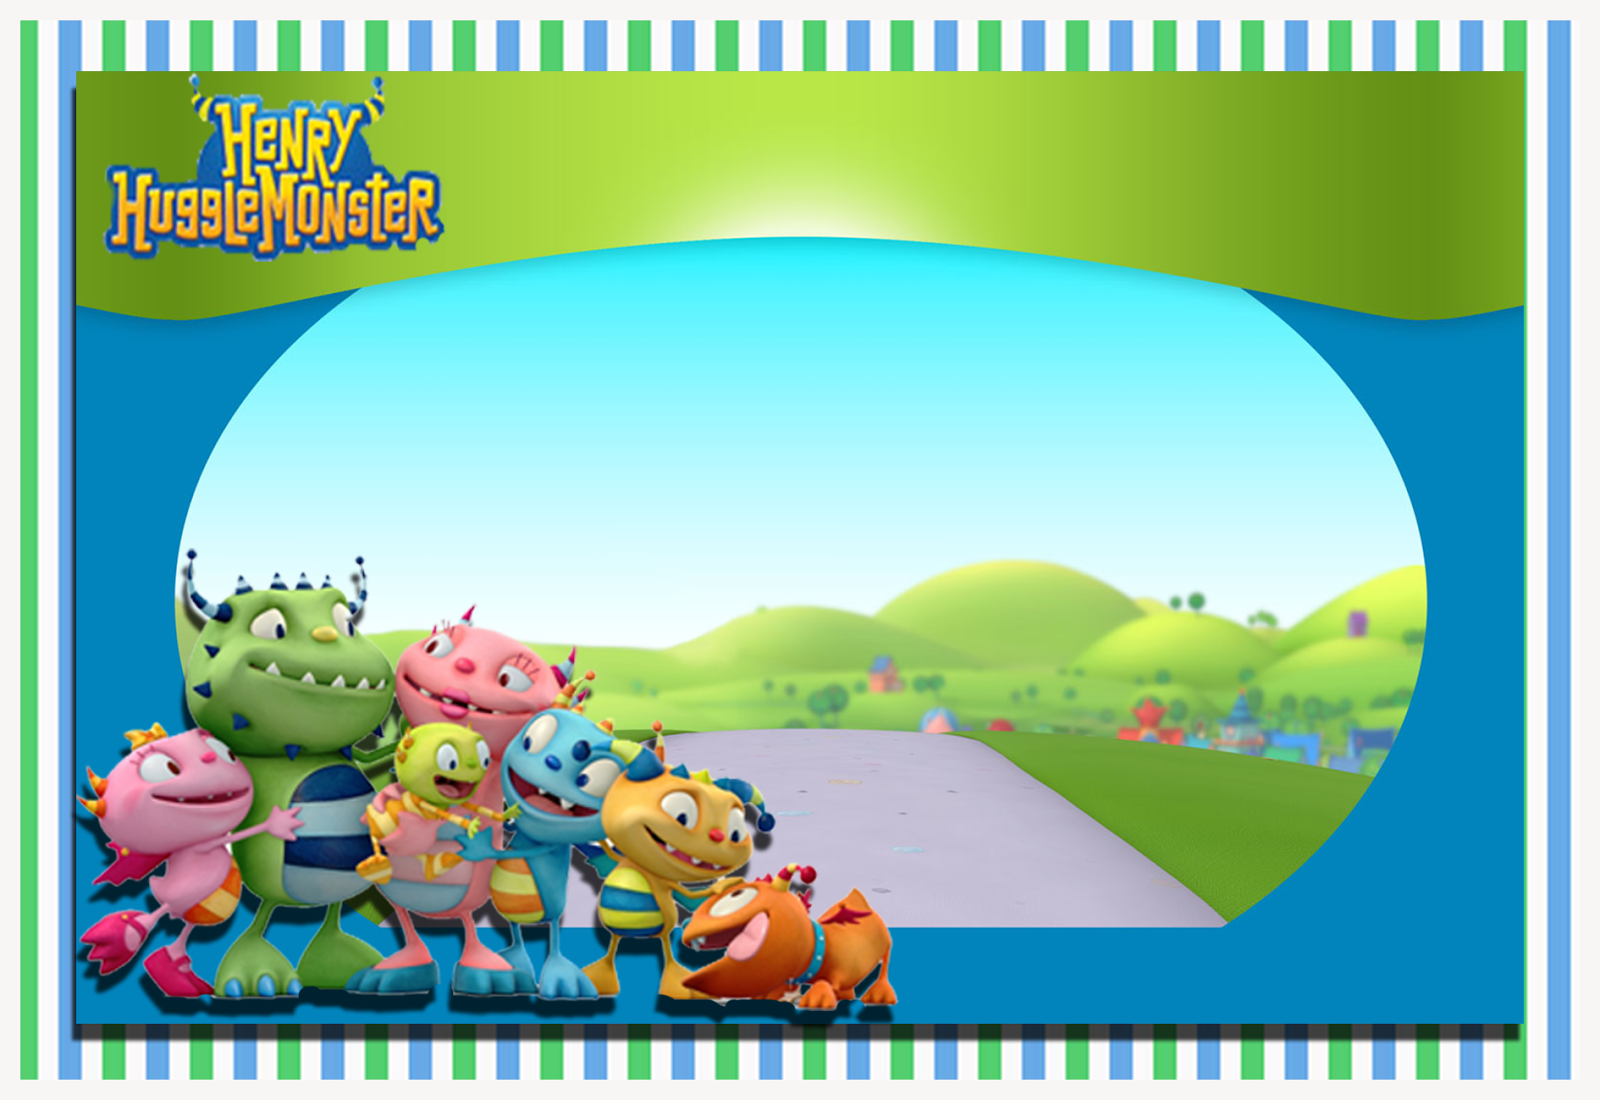 kit de henry hugglemonster - photo #5